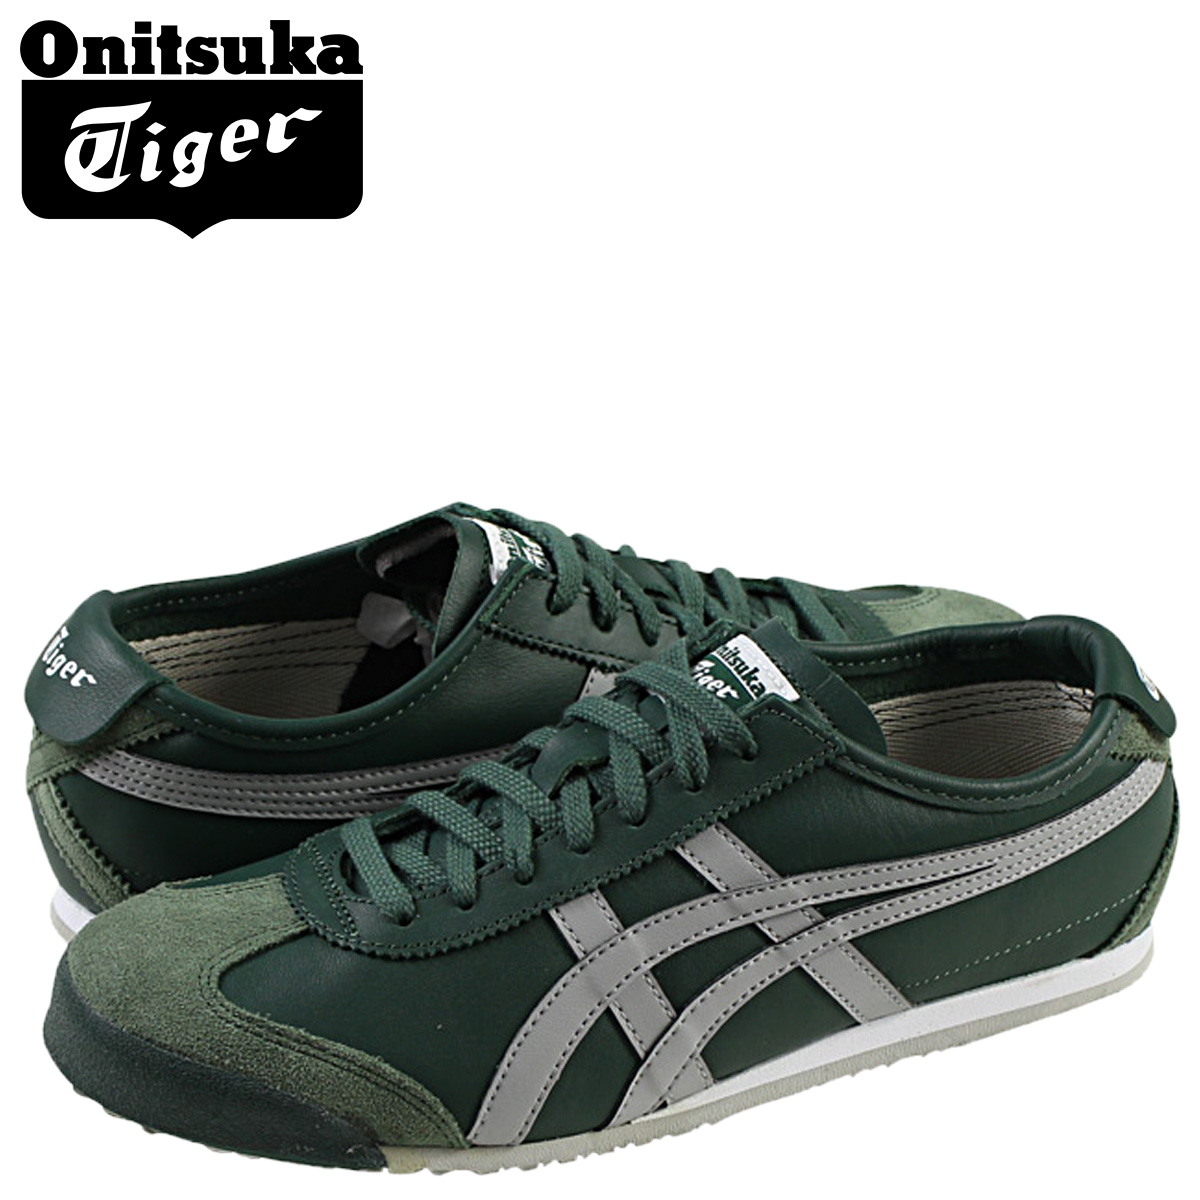 los angeles 6f98c b9cc8 Onitsuka Tiger ASICs Onitsuka Tiger asics mens Womens MEXICO 66 sneaker  Mexico TH4J 2L-8013 green [7/23 new in stock]